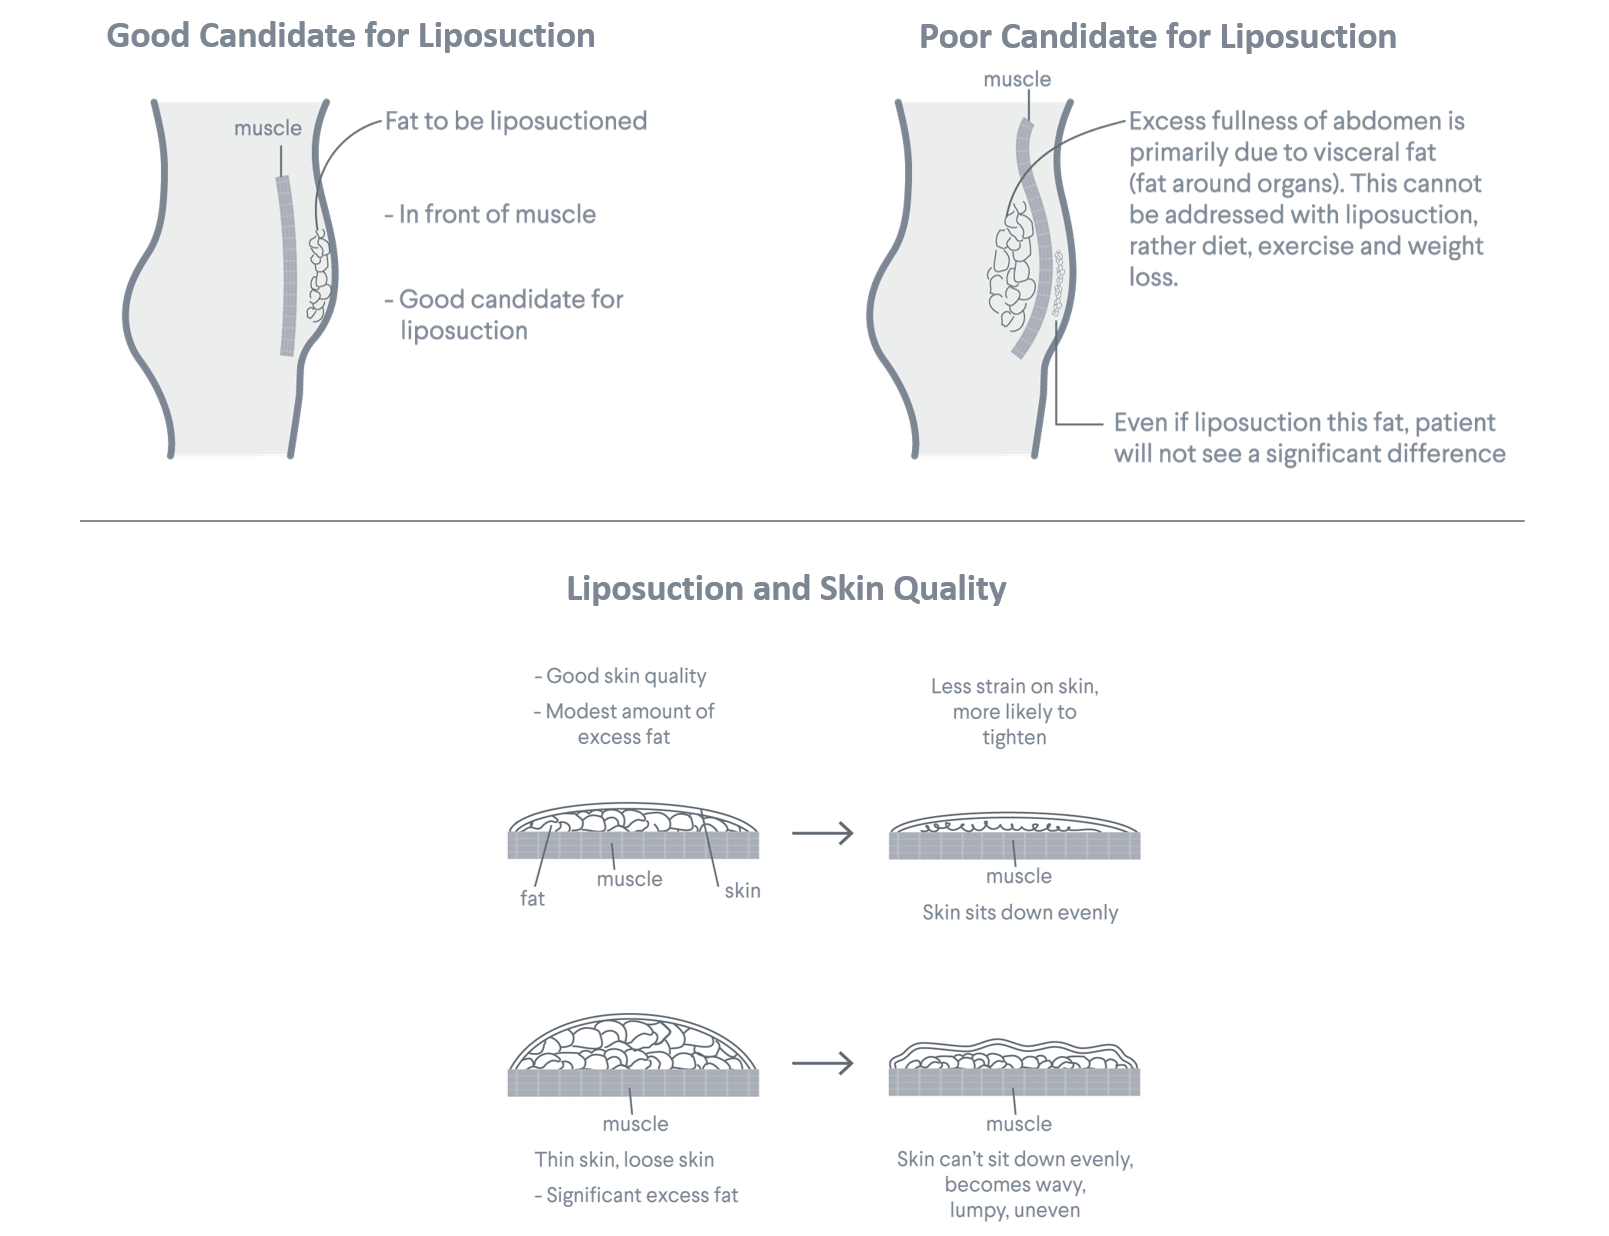 liposuction-seattle-plastic-surgeon-dr-salemy-fat-and-skin-quality